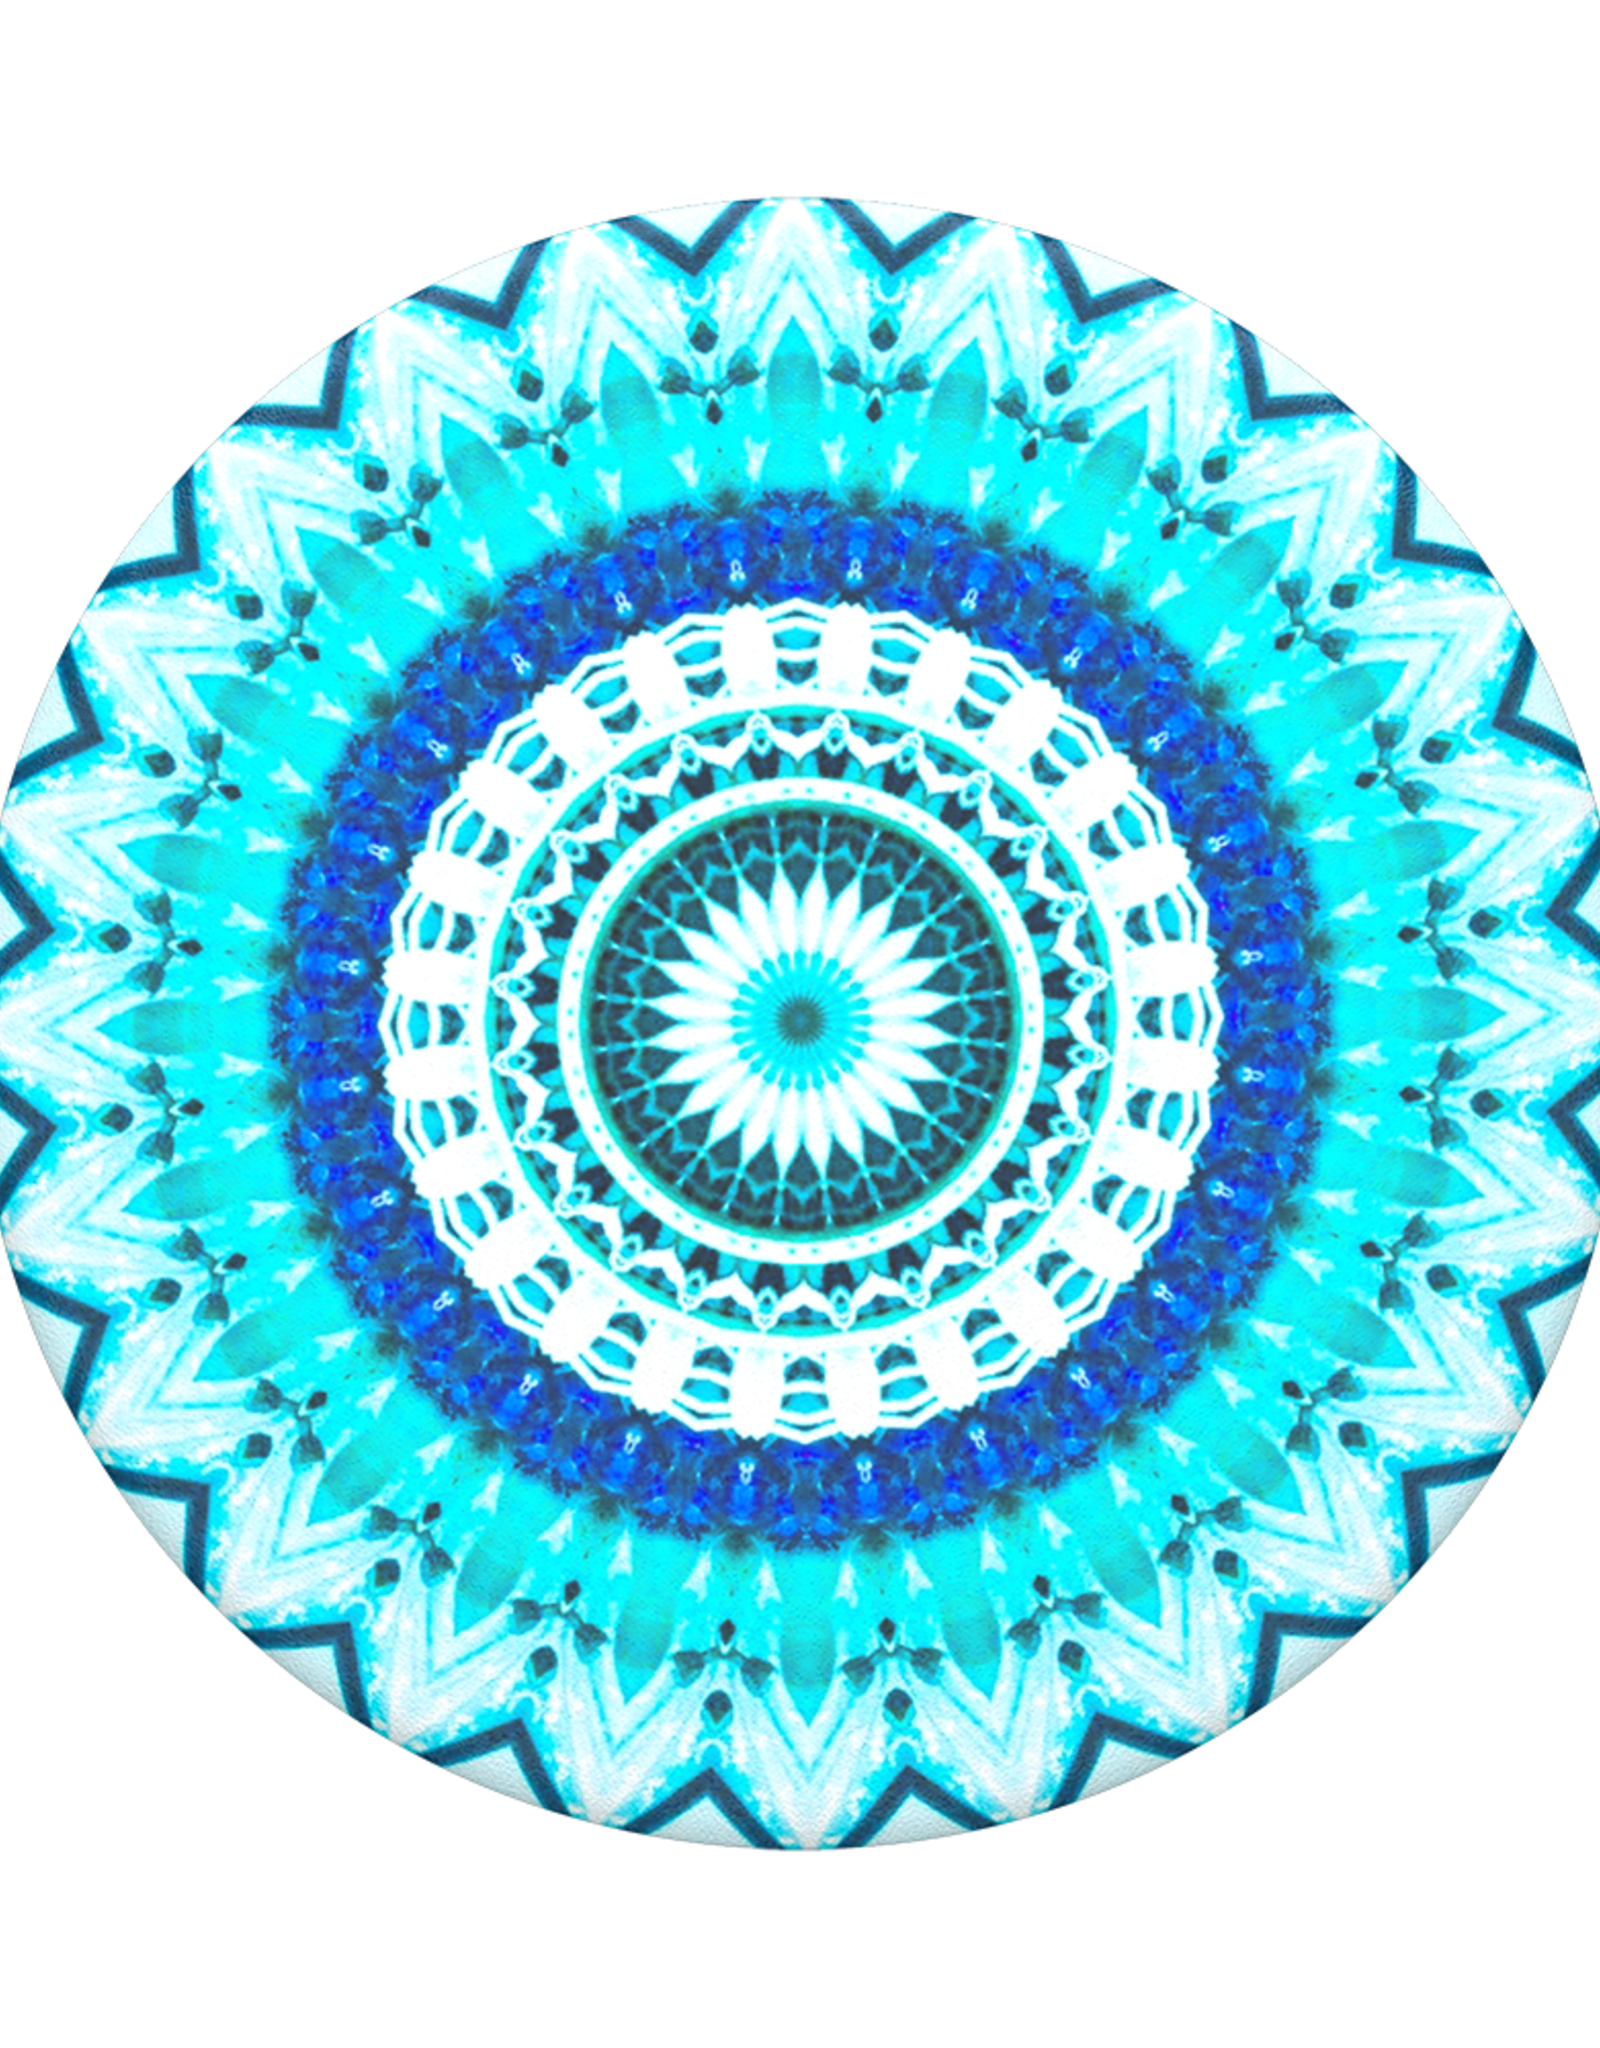 Popsockets PopSockets | PopGrip (Complete Swappable PopGrip) Blue Floral Mandala 115-1866